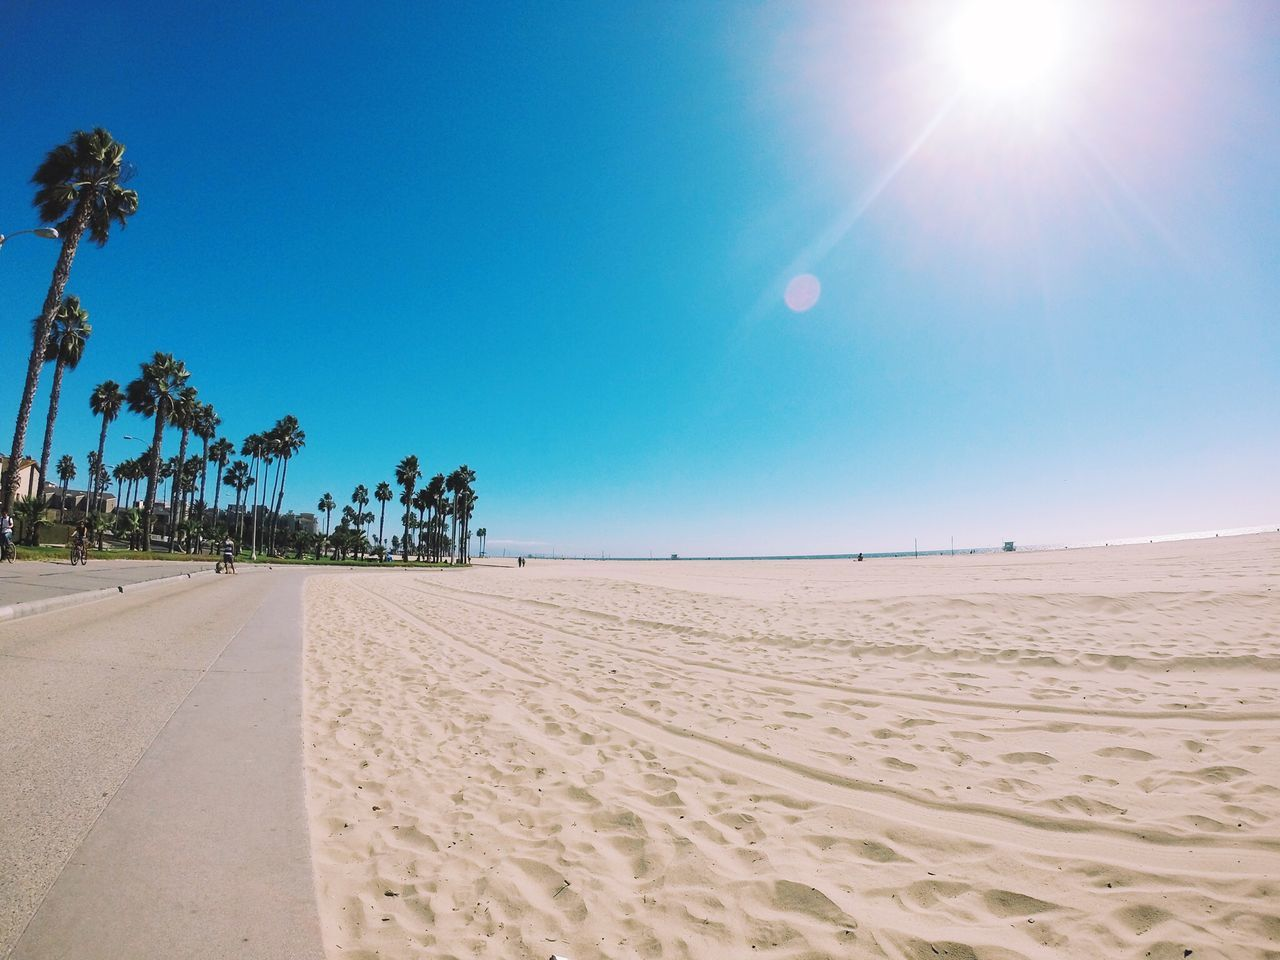 Scenic View Of Beach Against Clear Sky On Sunny Day